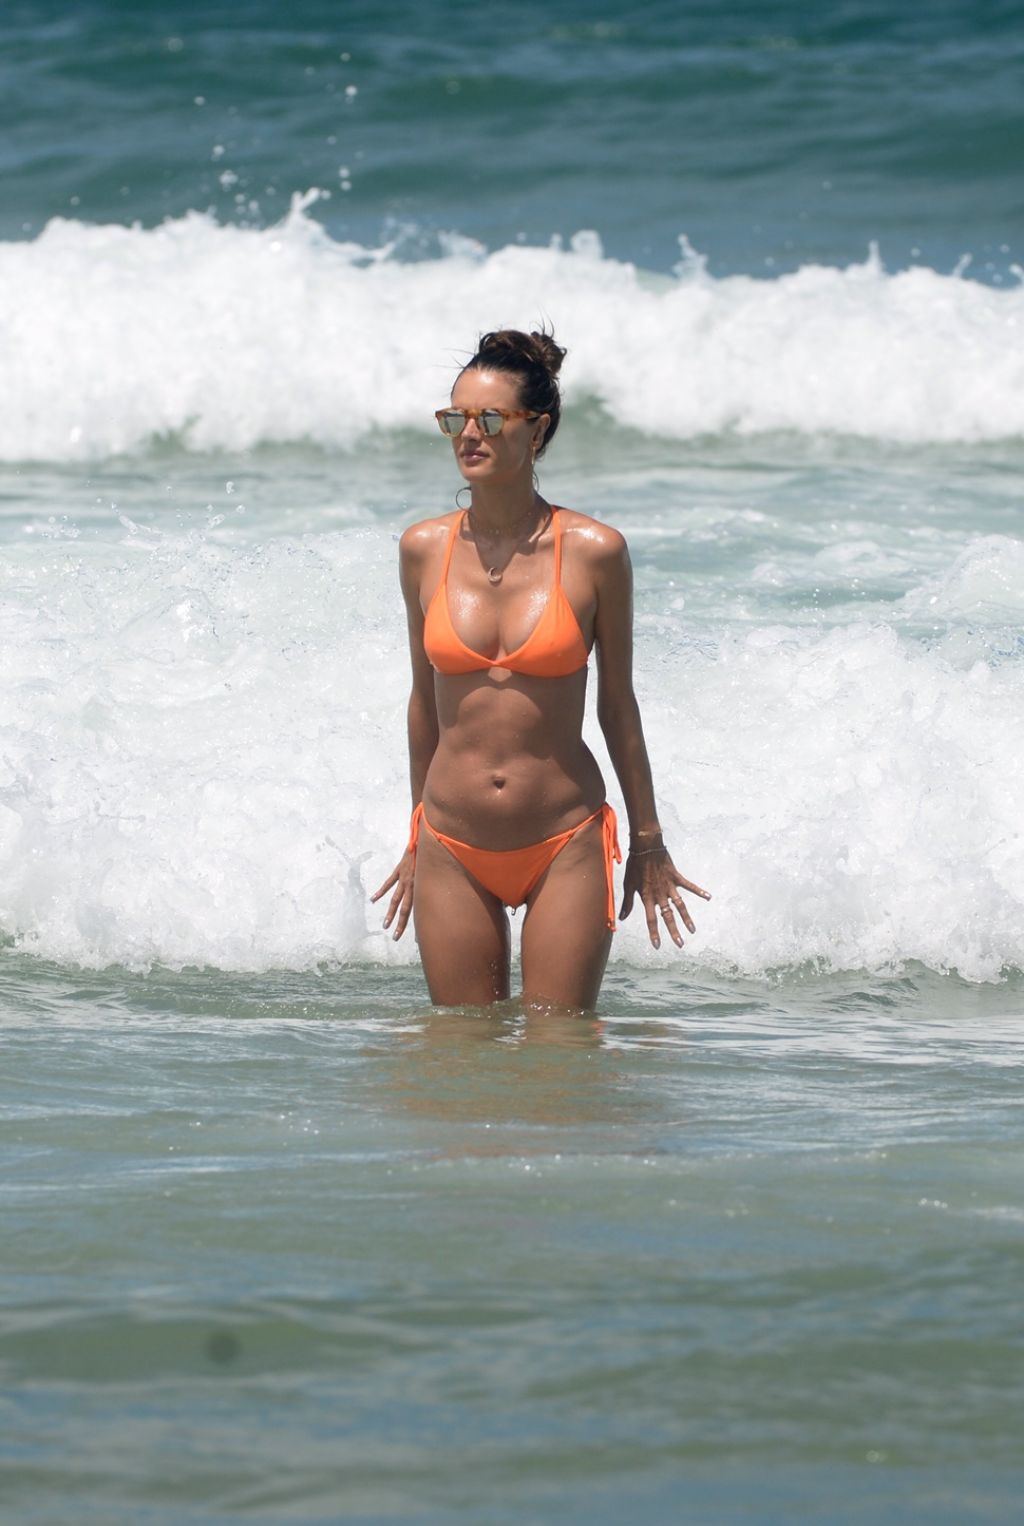 Alessandra Ambrosio in a Peach Bikini on the Beach in Rio